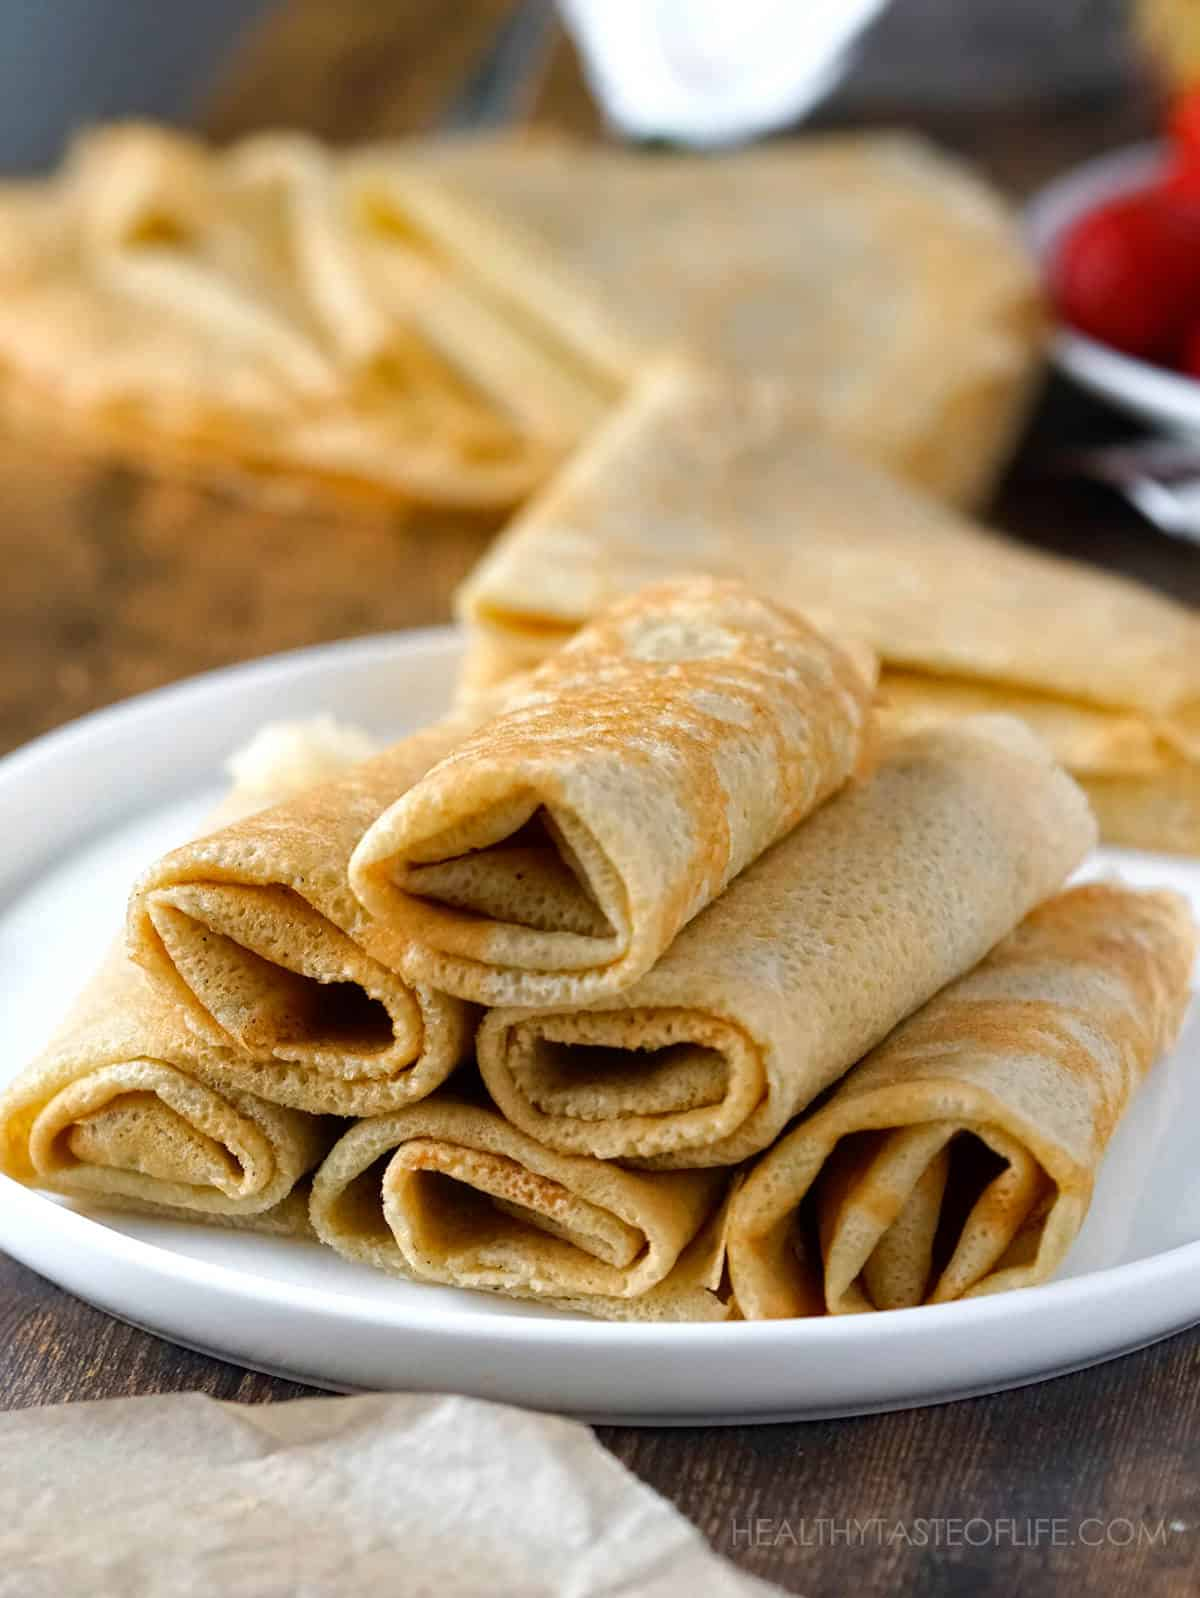 Thin pliable gluten free crepes rolled - how to make gluten free crepes.